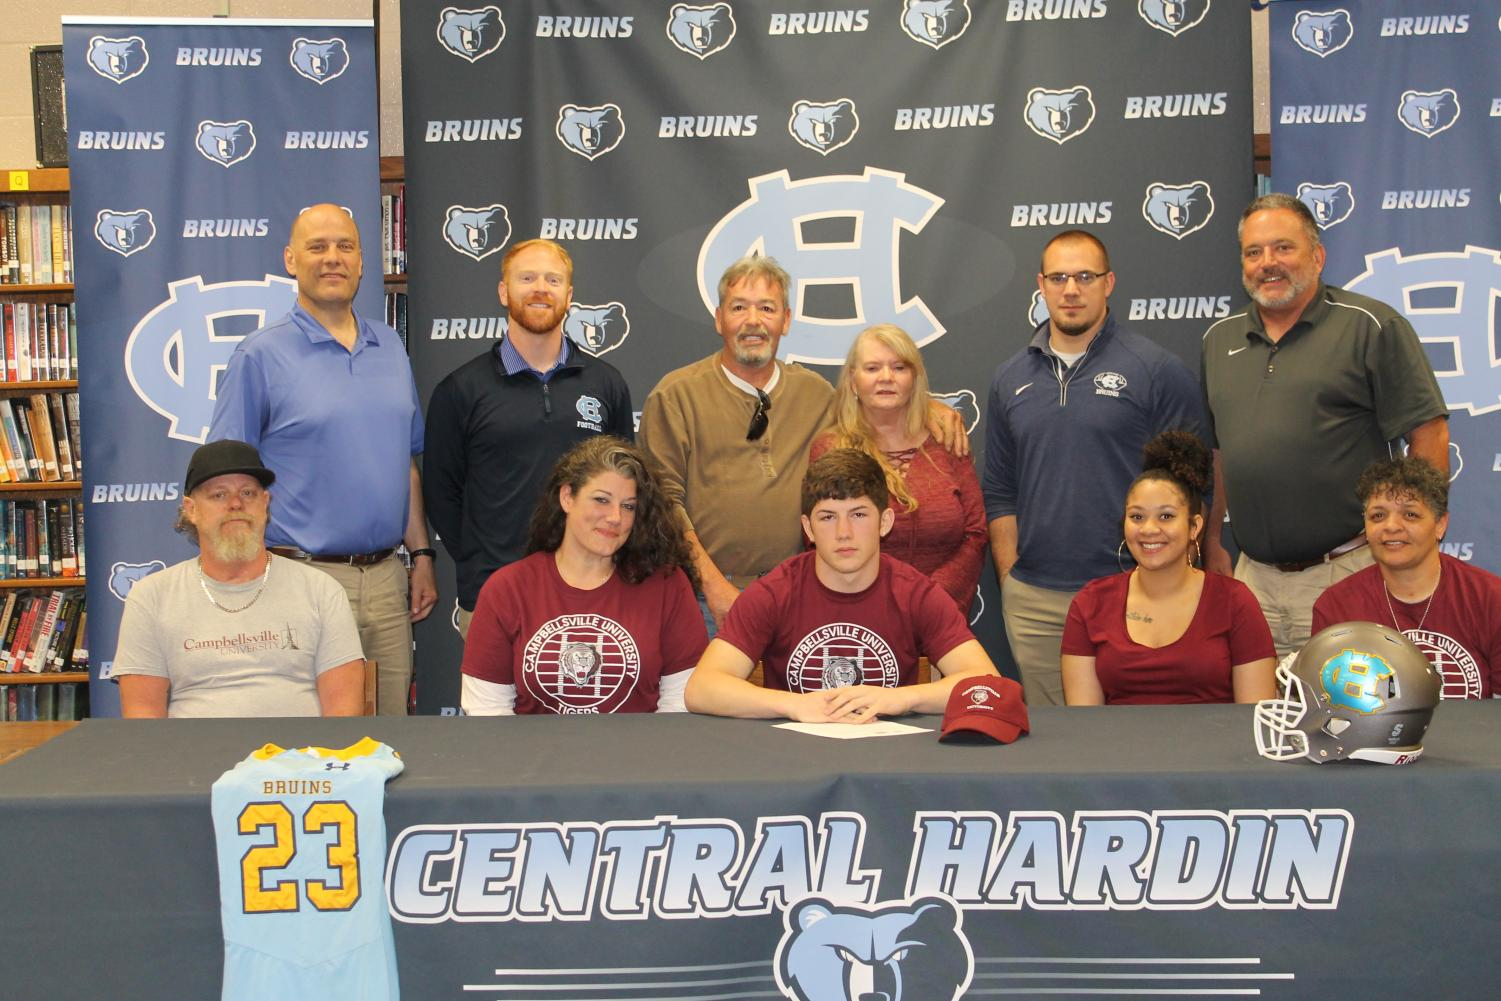 Chris+Bellin+signs+with+the+Campbellsville+University+football+program+on+April+12%2C+surrounded+by+family+and+coaches.